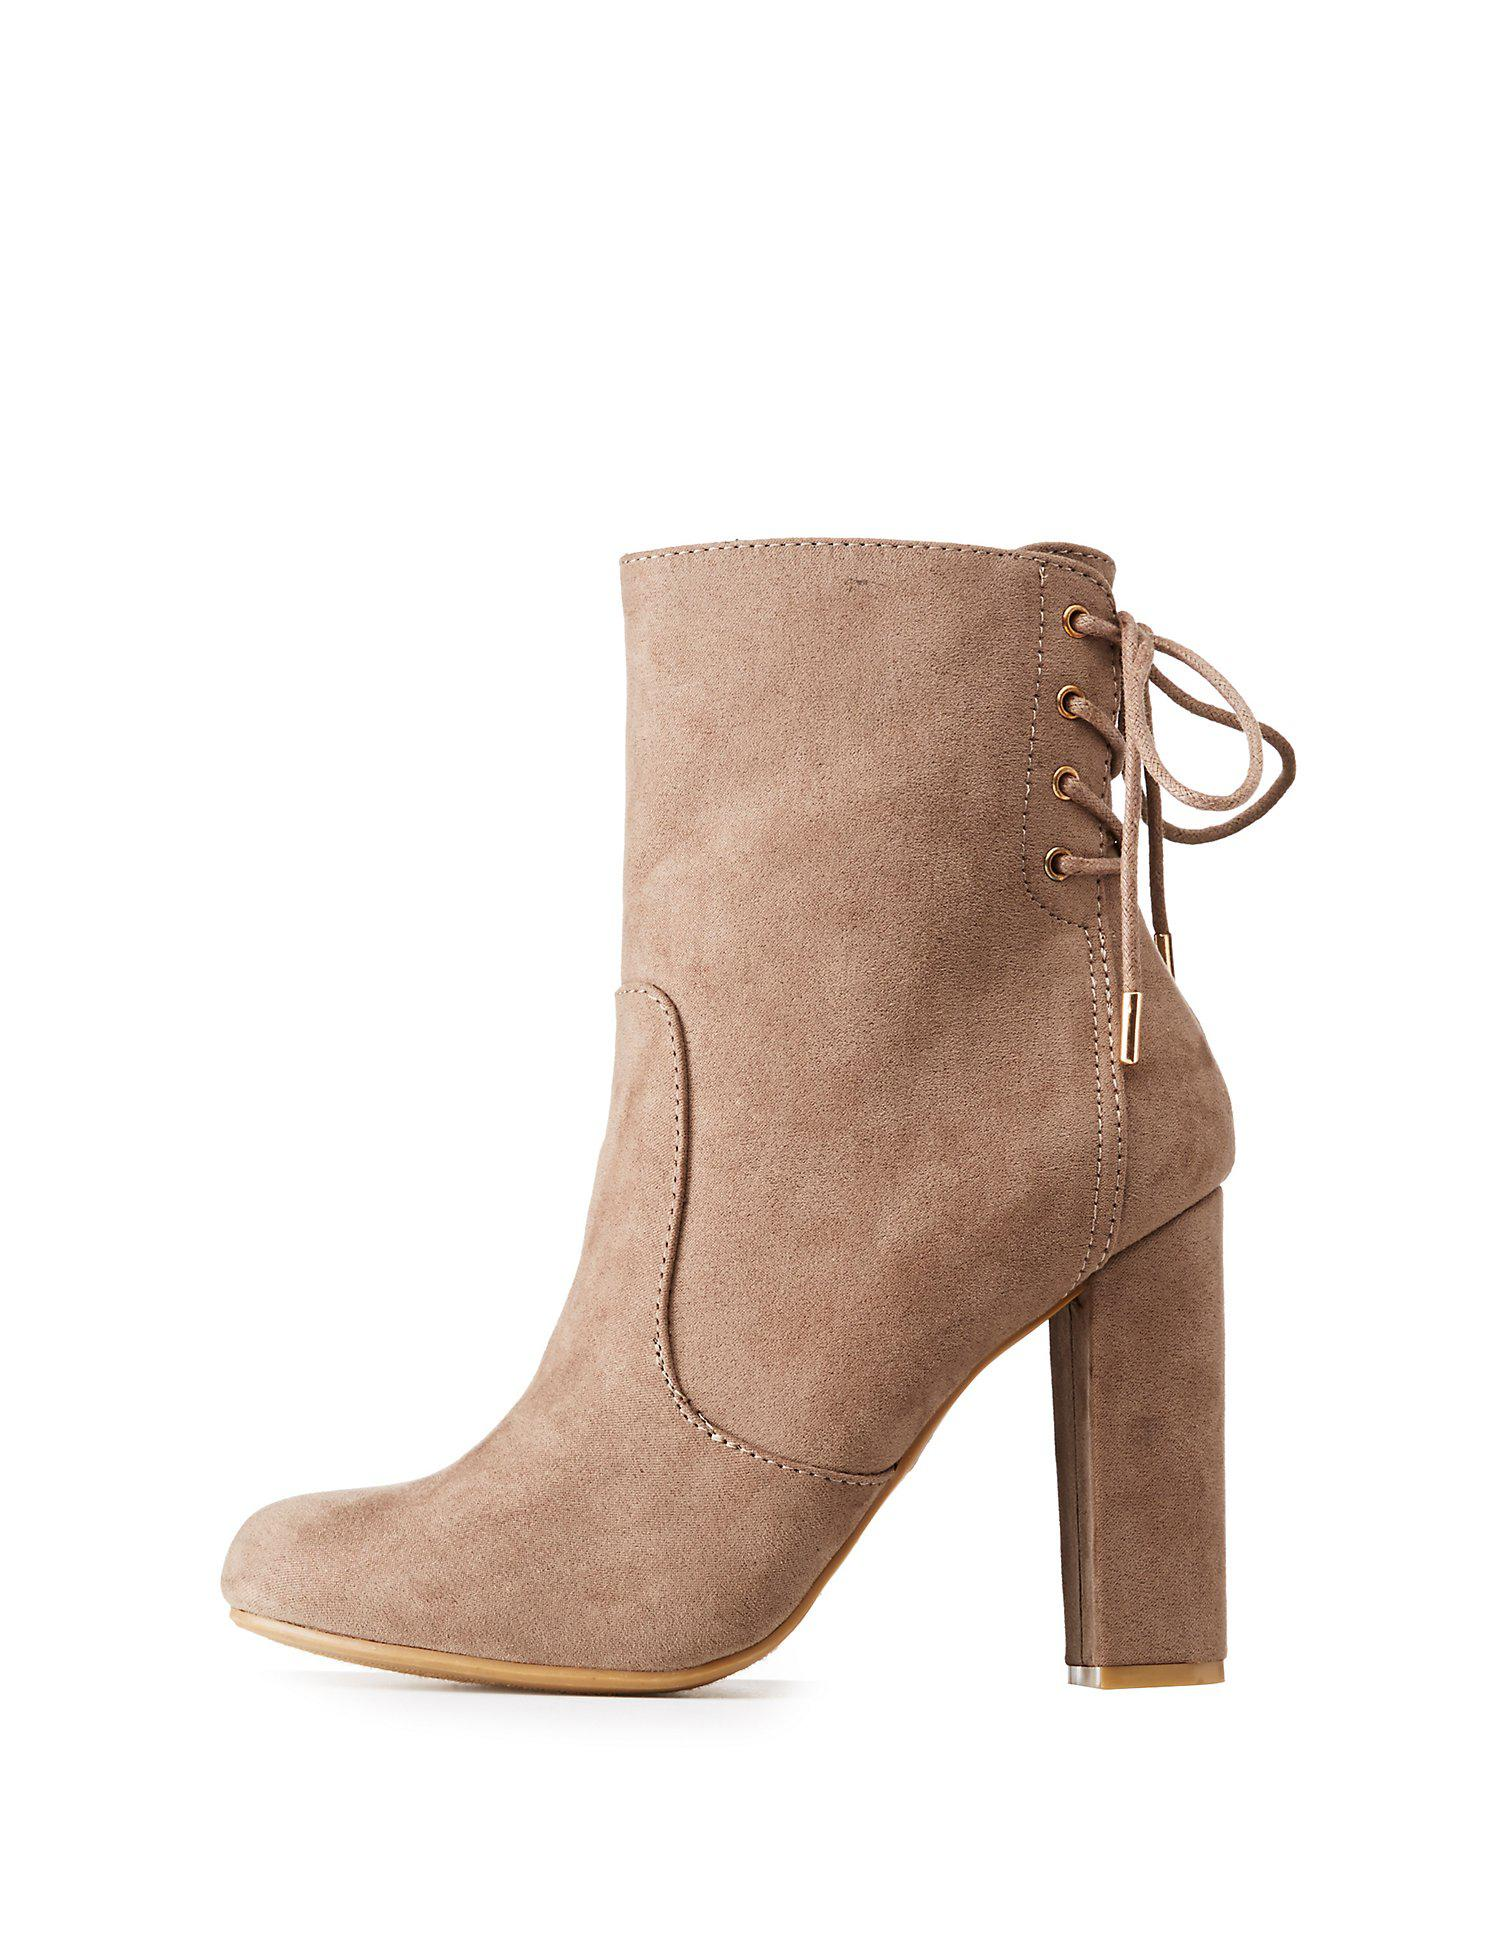 021e2e0f609f Lyst - Charlotte Russe Bamboo Tie-back Ankle Booties in Brown